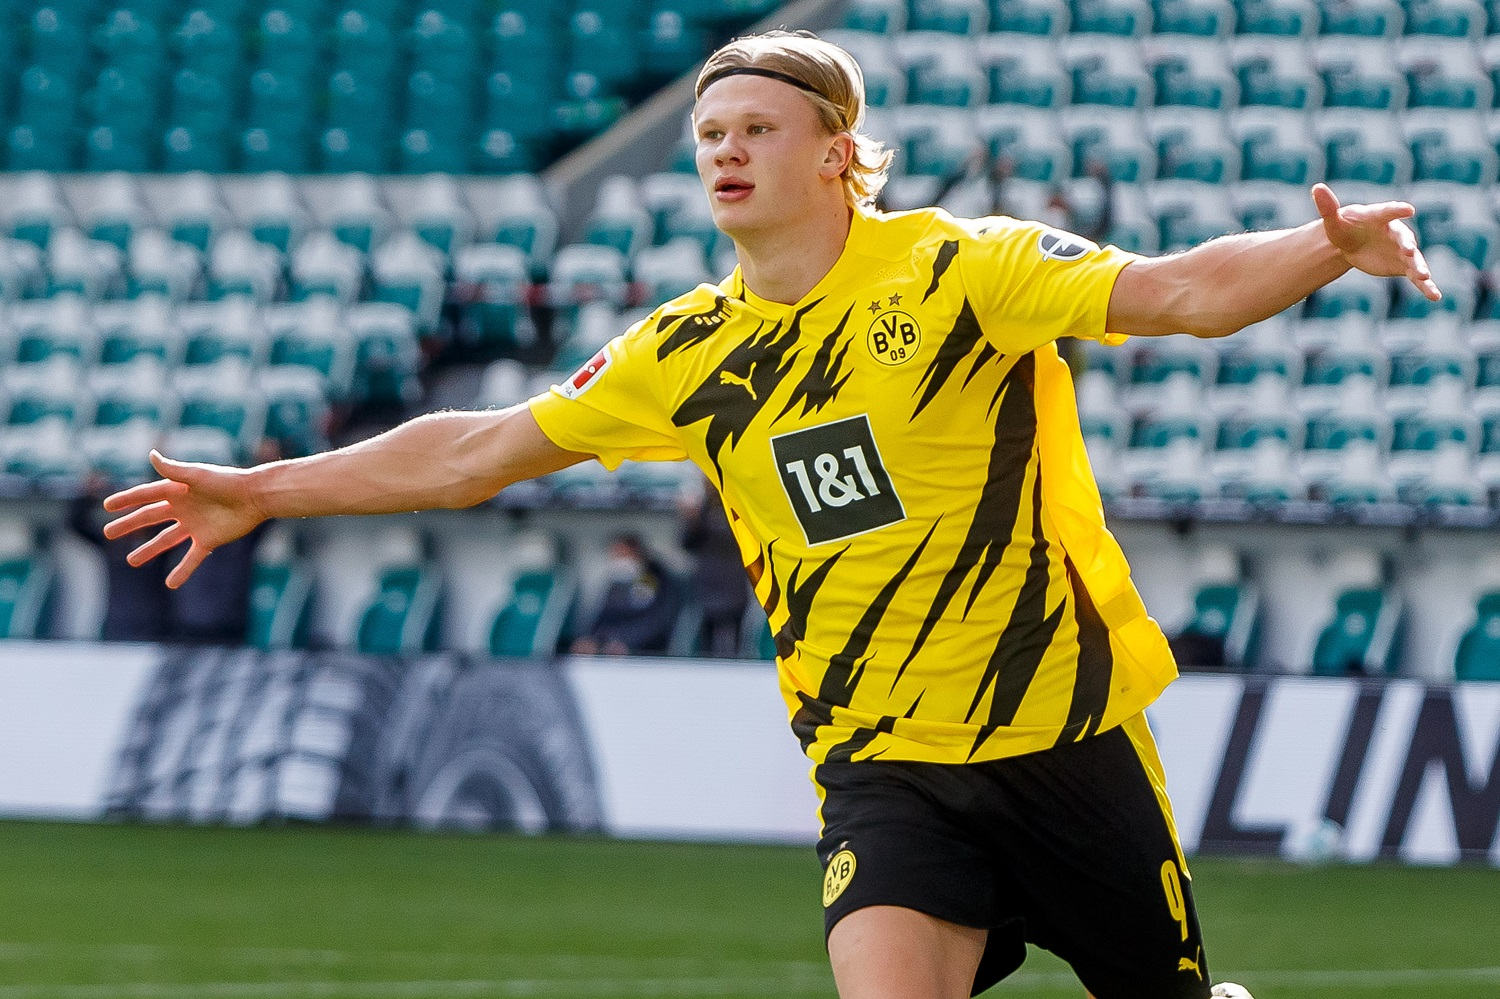 Erling Haaland of Borussia Dortmund celebrates after scoring his team's second goal during the Bundesliga match between vs. VfL Wolfsburg on April 24, 2021.